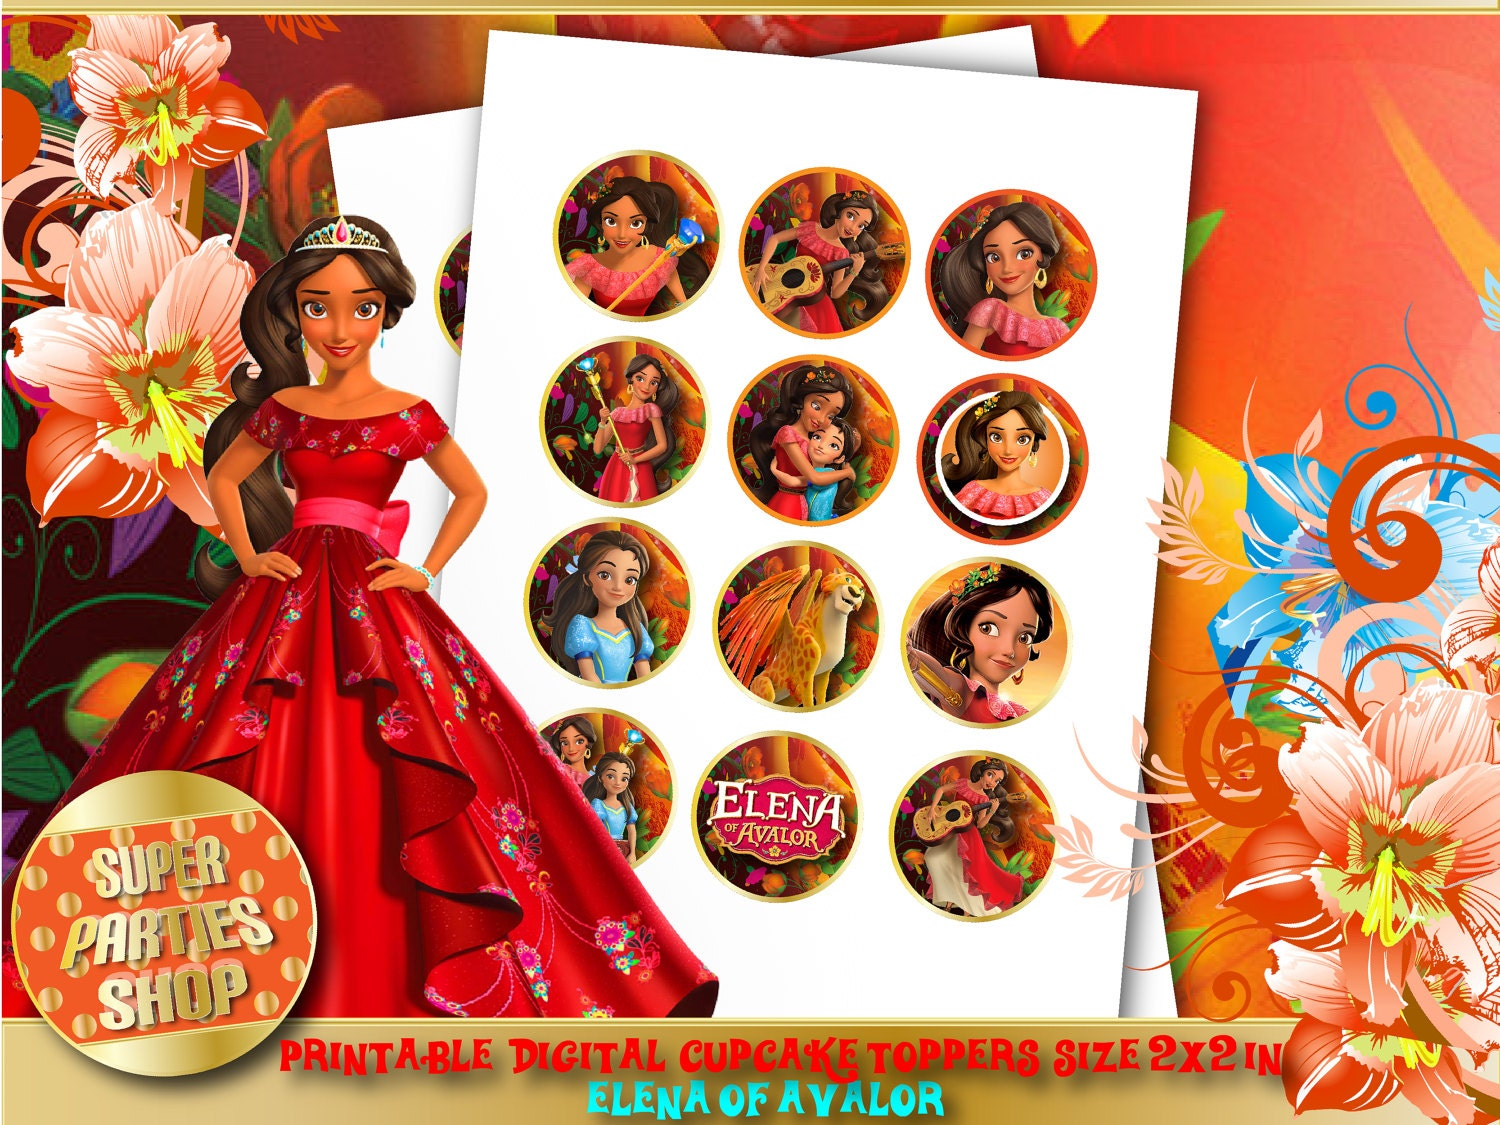 Elena of Avalor Digital Printable Party Cupcake Toppers | Etsy